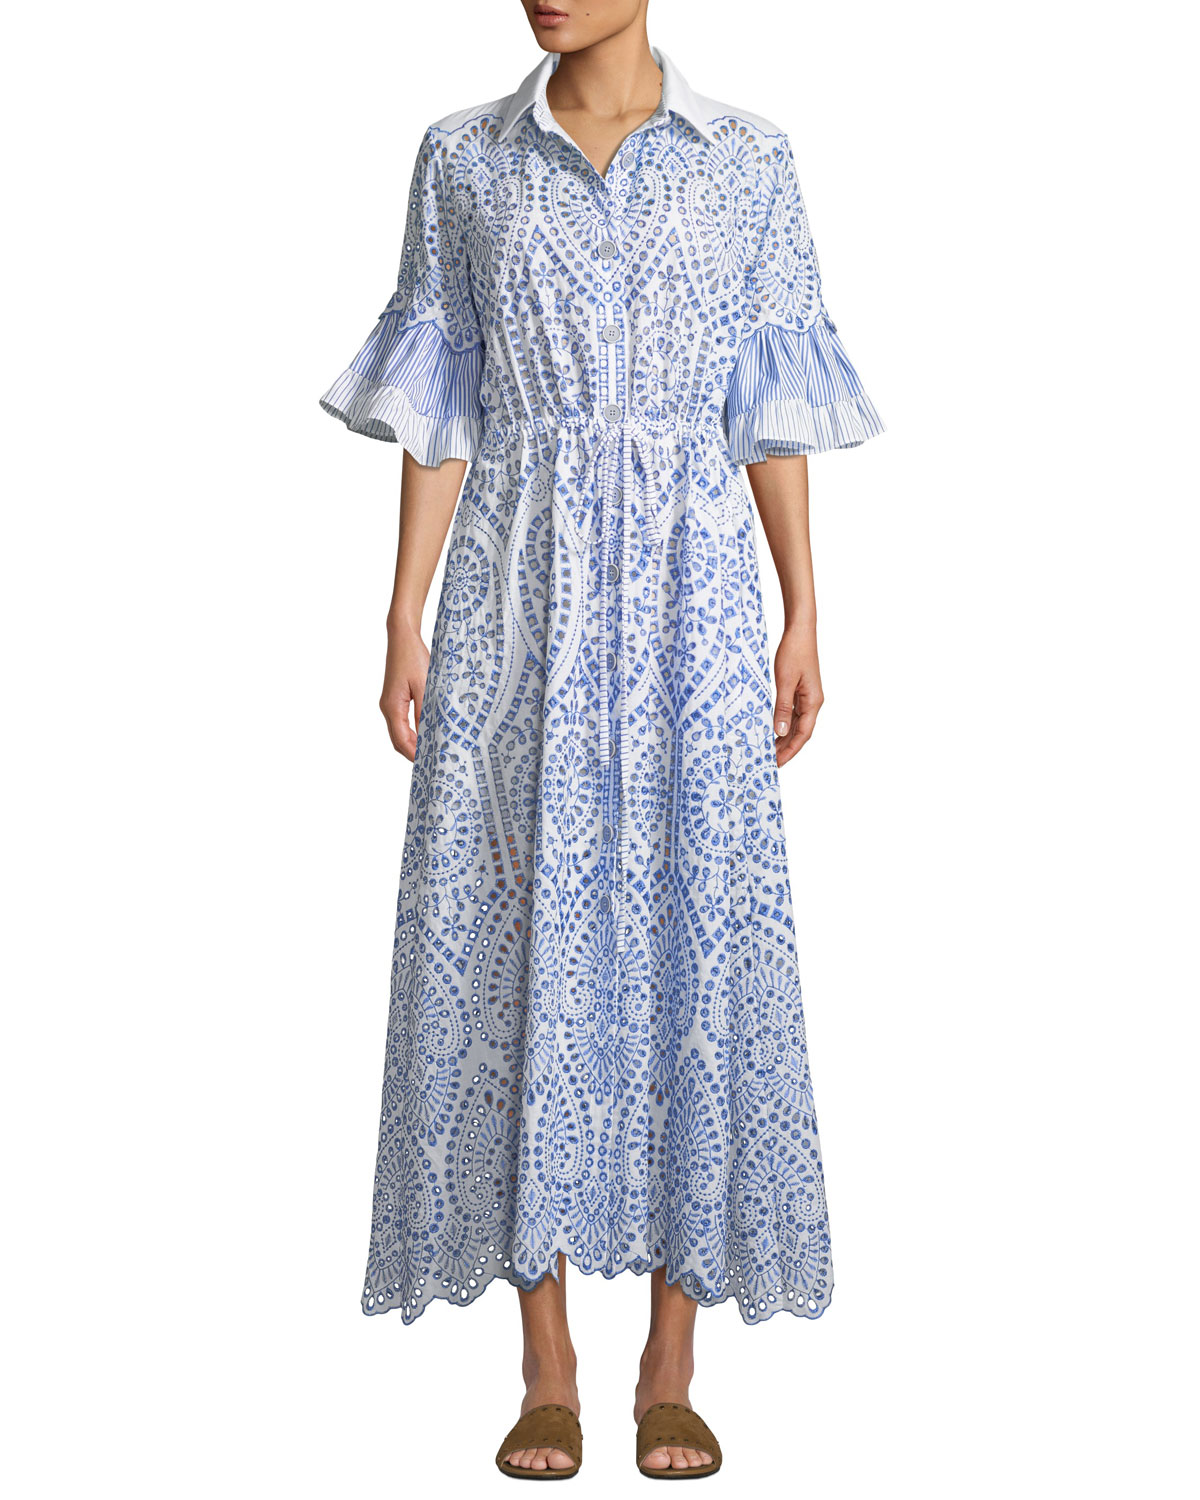 EVI GRINTELA Valerie Cotton Lace Shirtdress in Blue/White